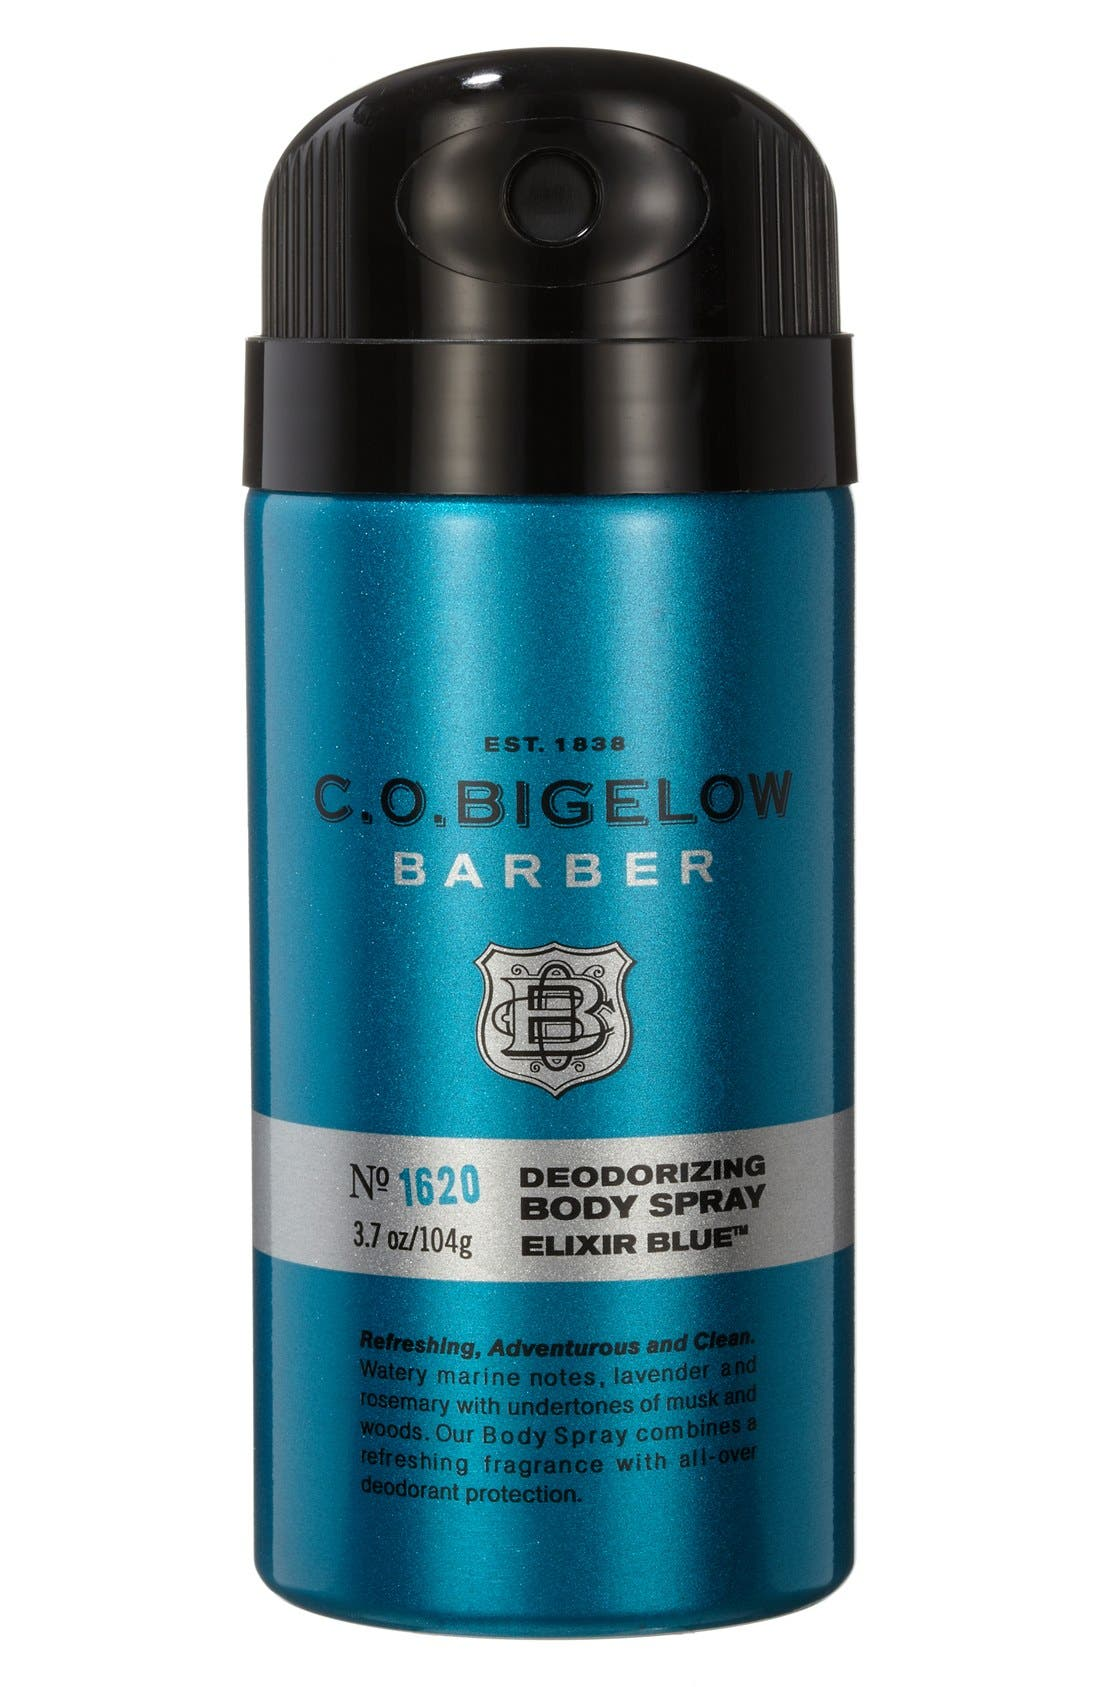 C.O. Bigelow® 'Barber - Elixir Blue' Body Spray